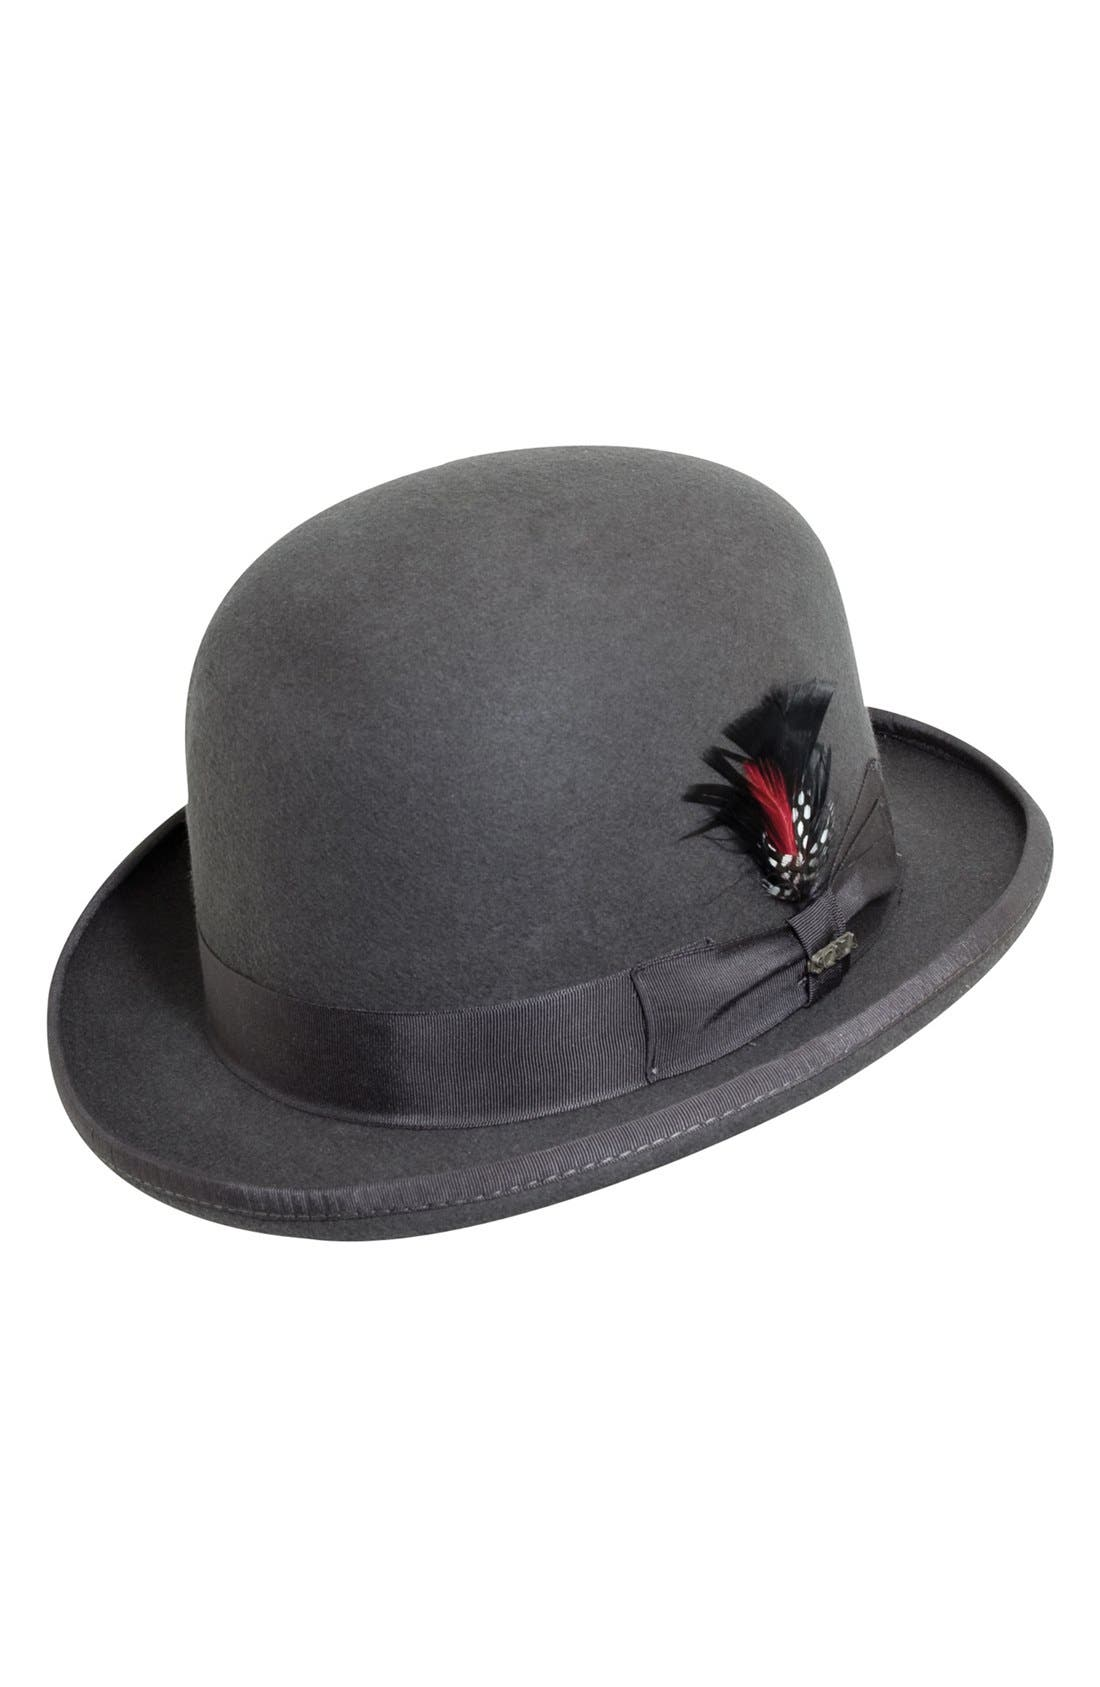 SCALA Classico Wool Felt Derby Hat